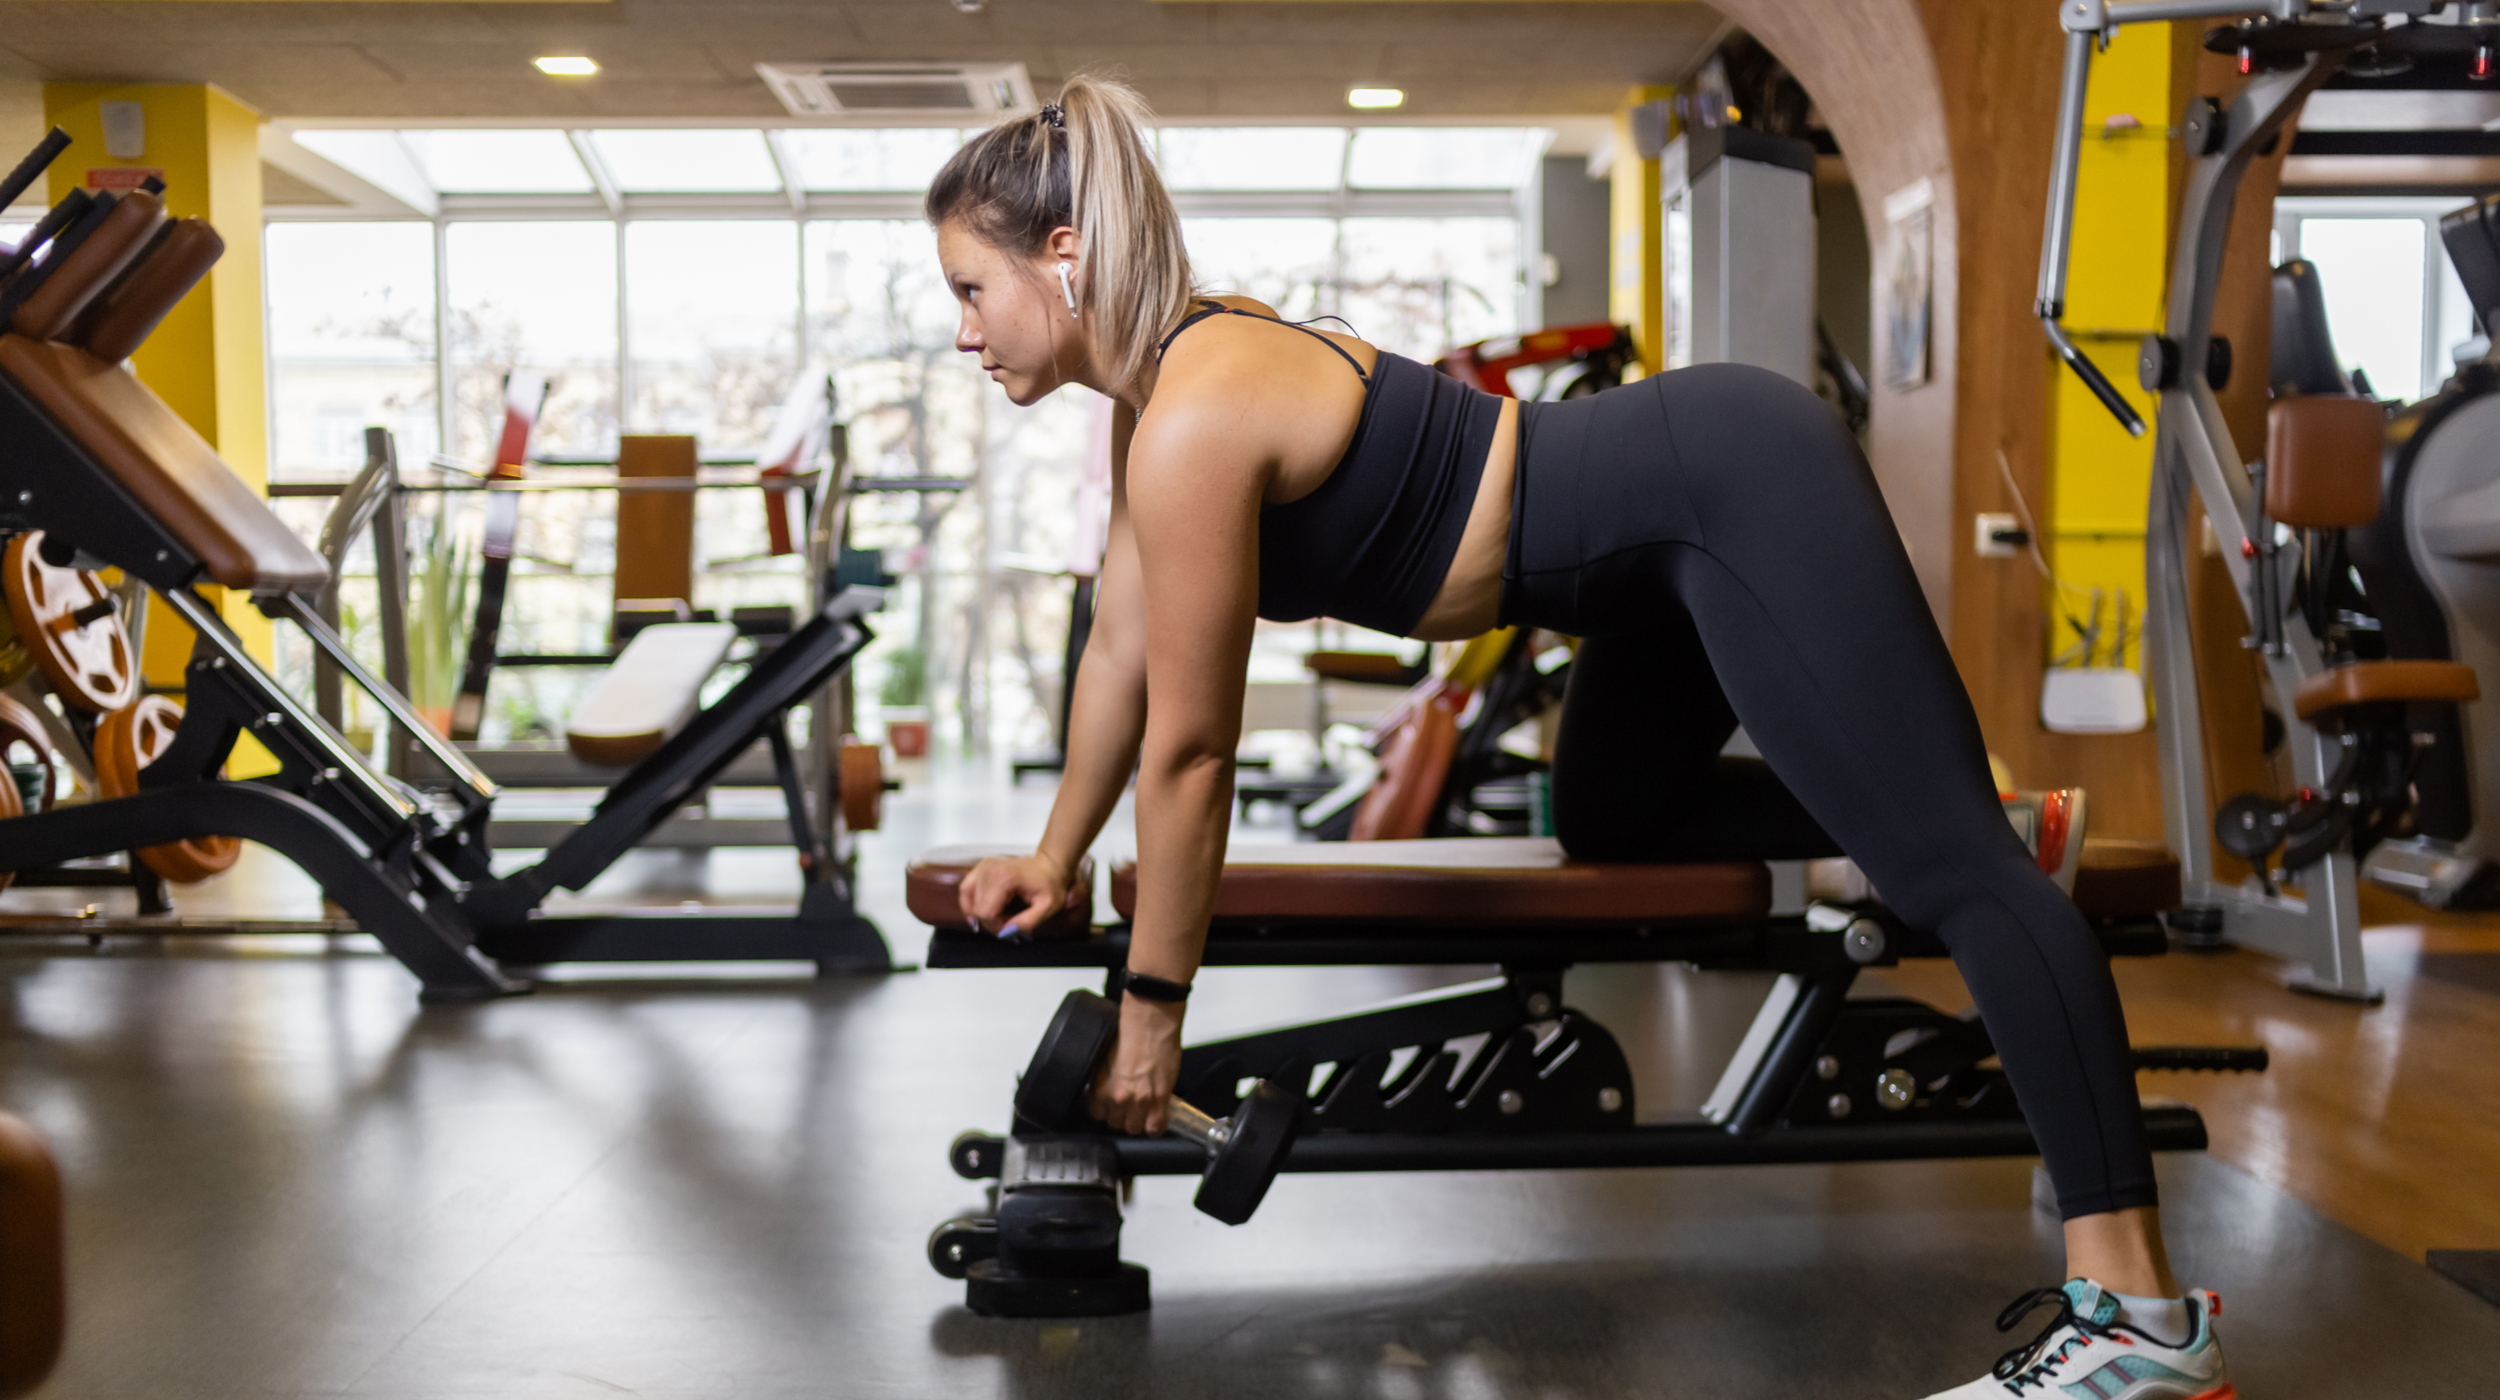 Skip the Cardio During Your Postpartum Weight Loss Journey